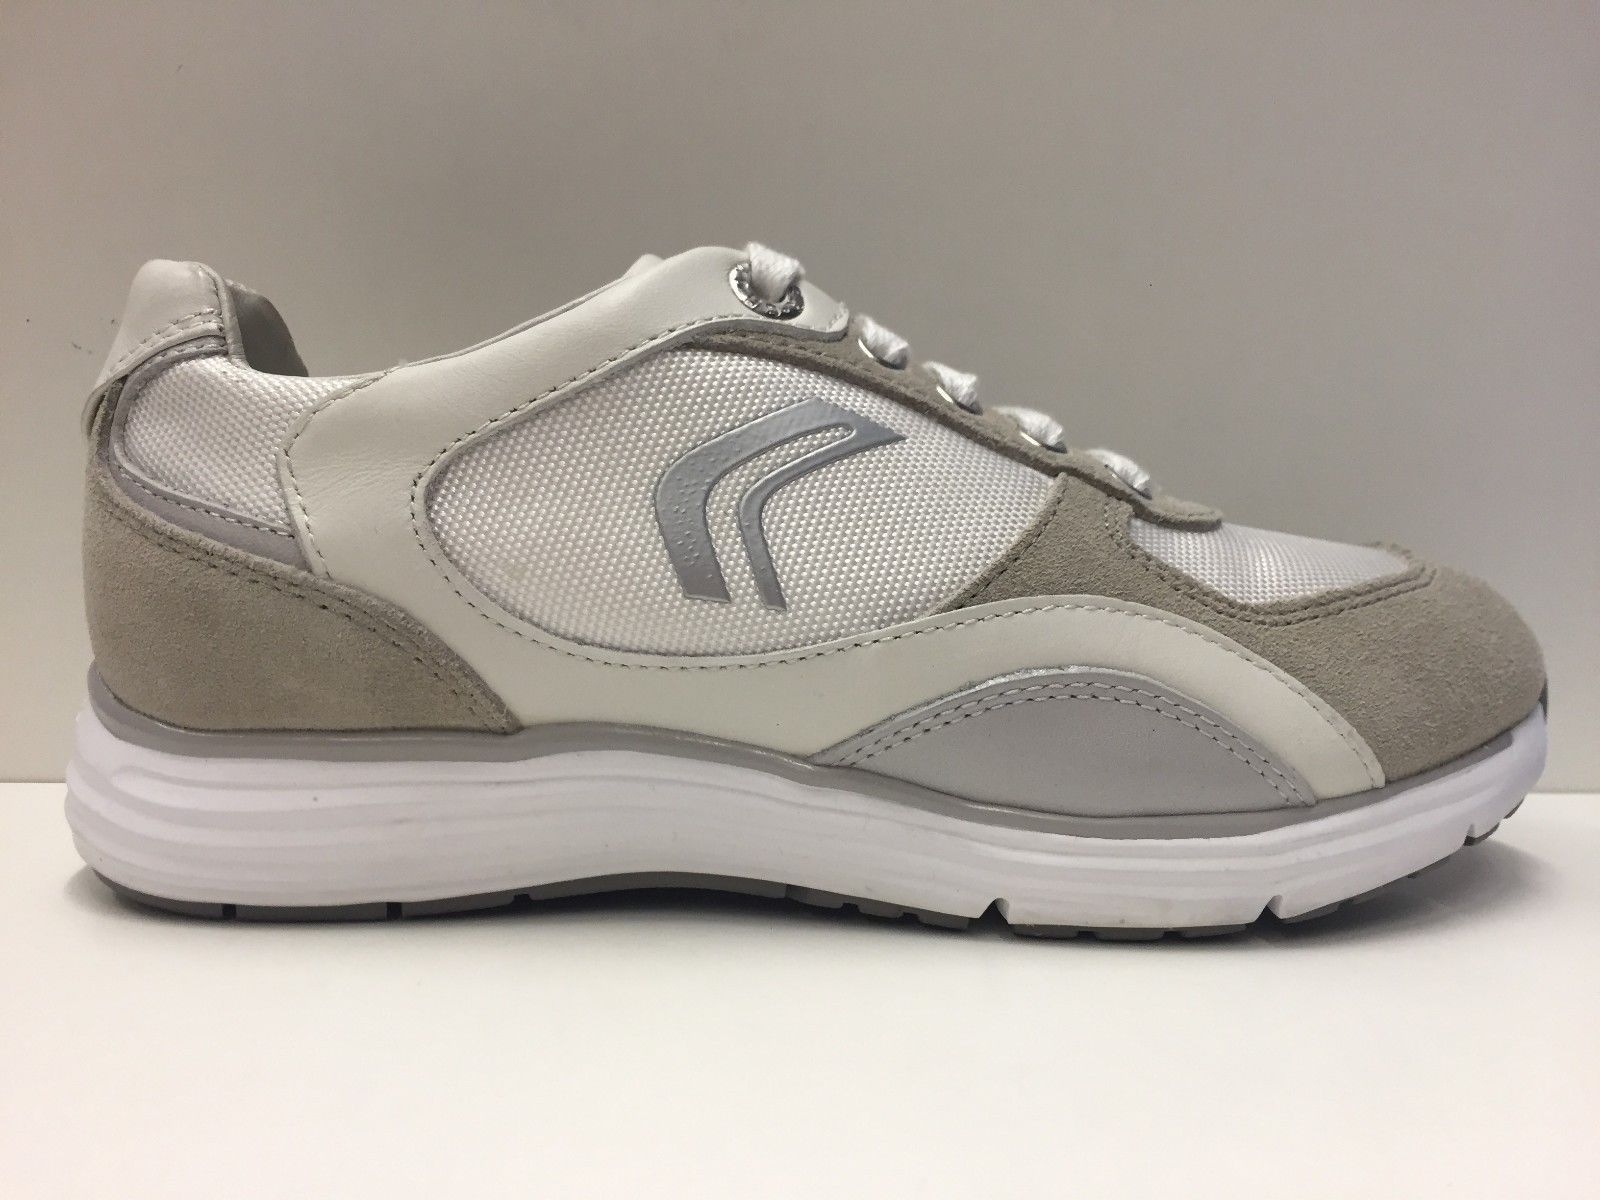 SCARPE CASUAL SNEAKERS DONNA GEOX ORIGINALE DYNAMIC D2205A SHOES PELLE PE NEW